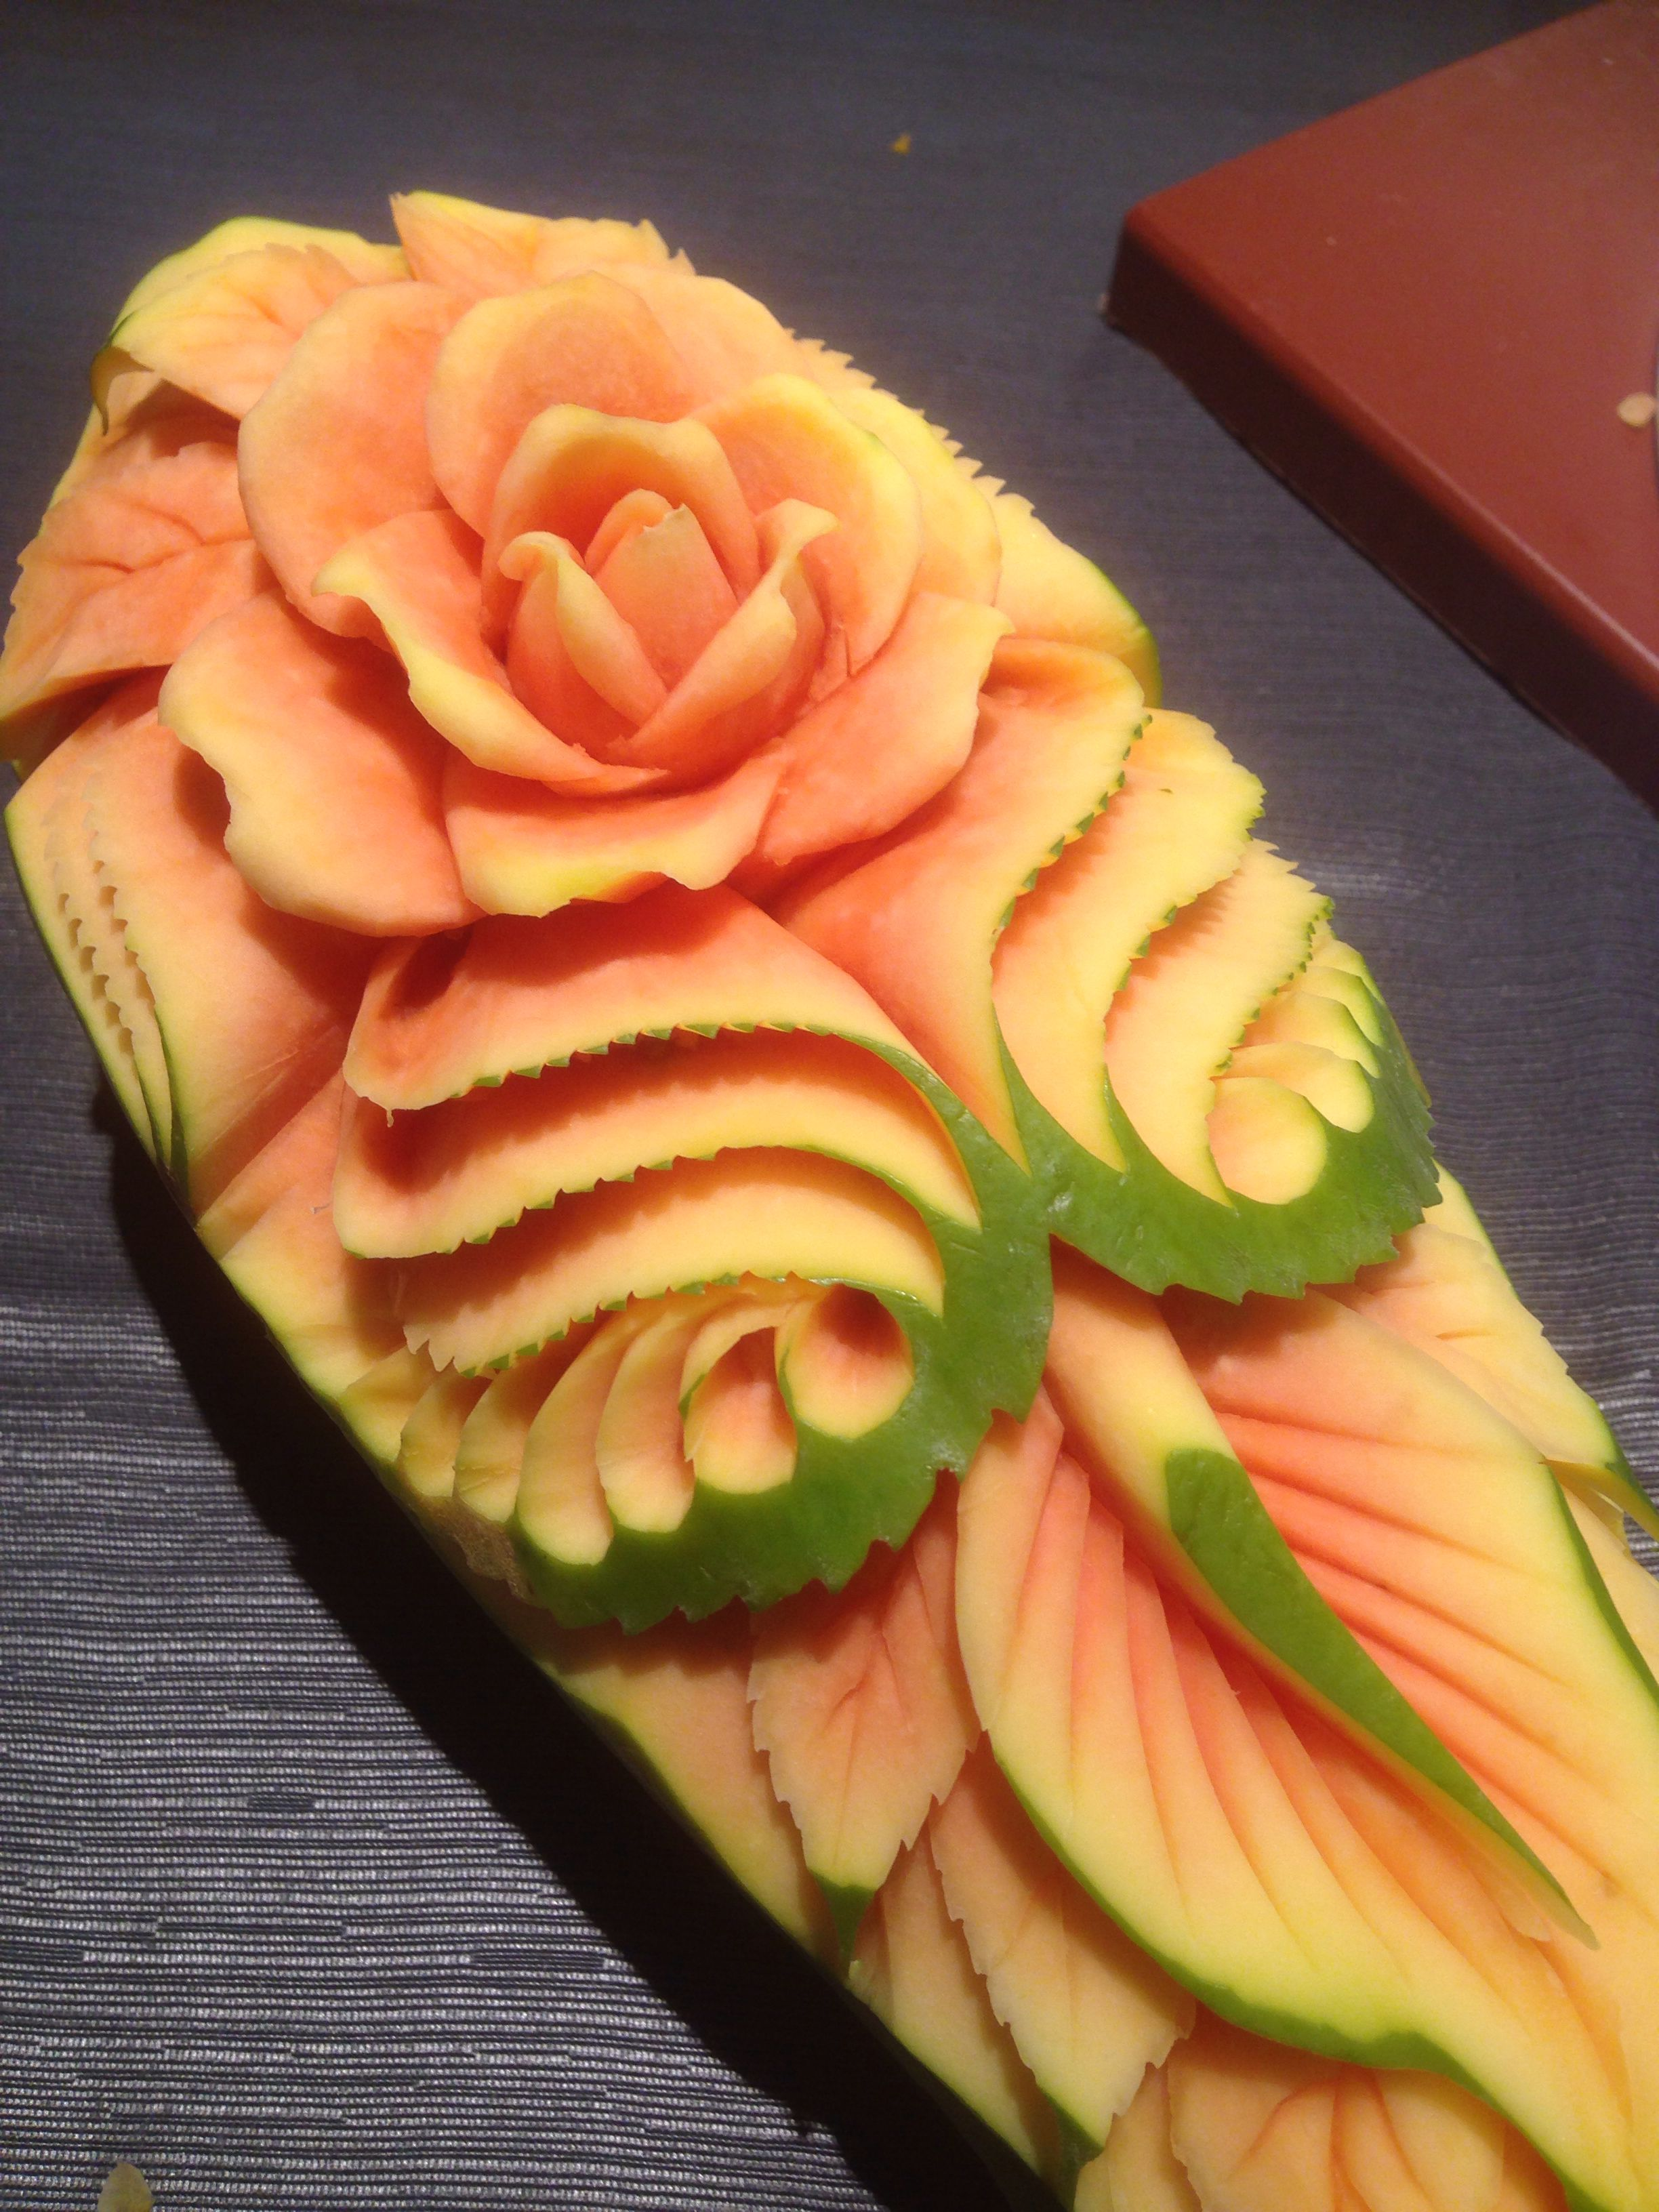 Papaya Art Calendar Uk : Papaya carving taste the rainbow in pinterest